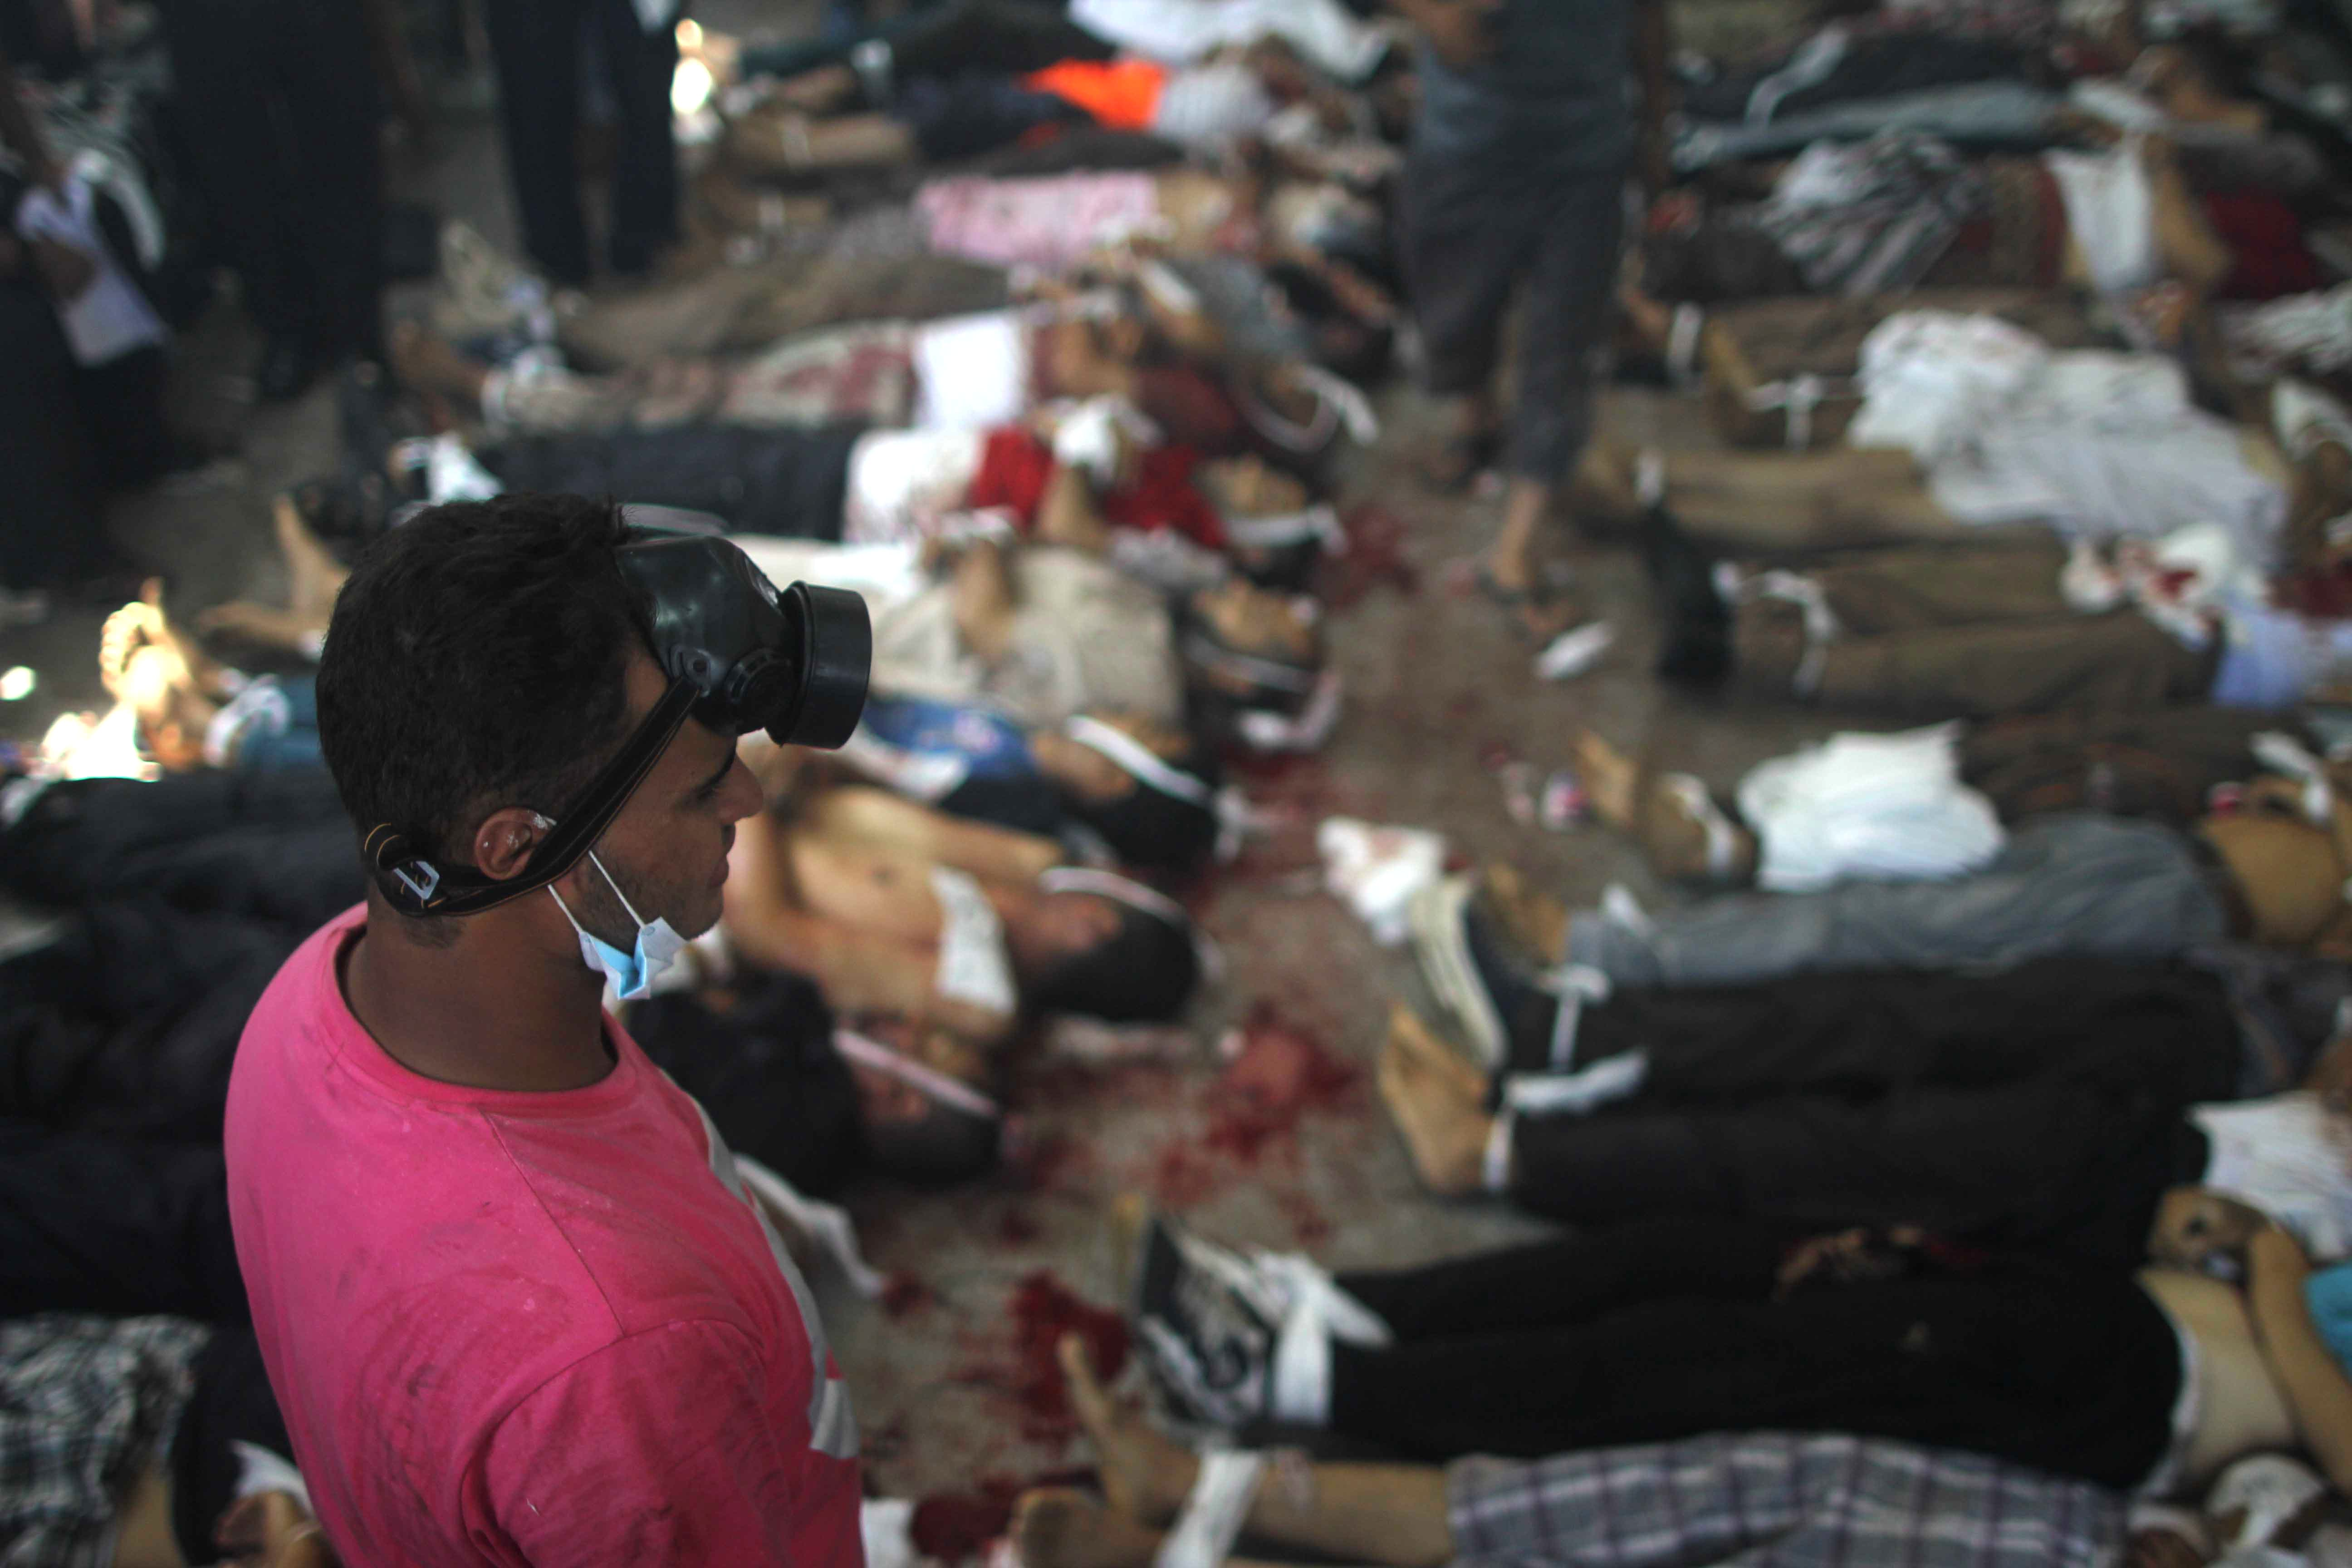 A man looks at bodies laid out in a make shift morgue after Egyptian security forces stormed two huge protest camps at the Rabaa al-Adawiya and Al-Nahda squares where supporters of ousted president Mohamed Morsi were camped (AFP/MOSAAB EL-SHAMY)